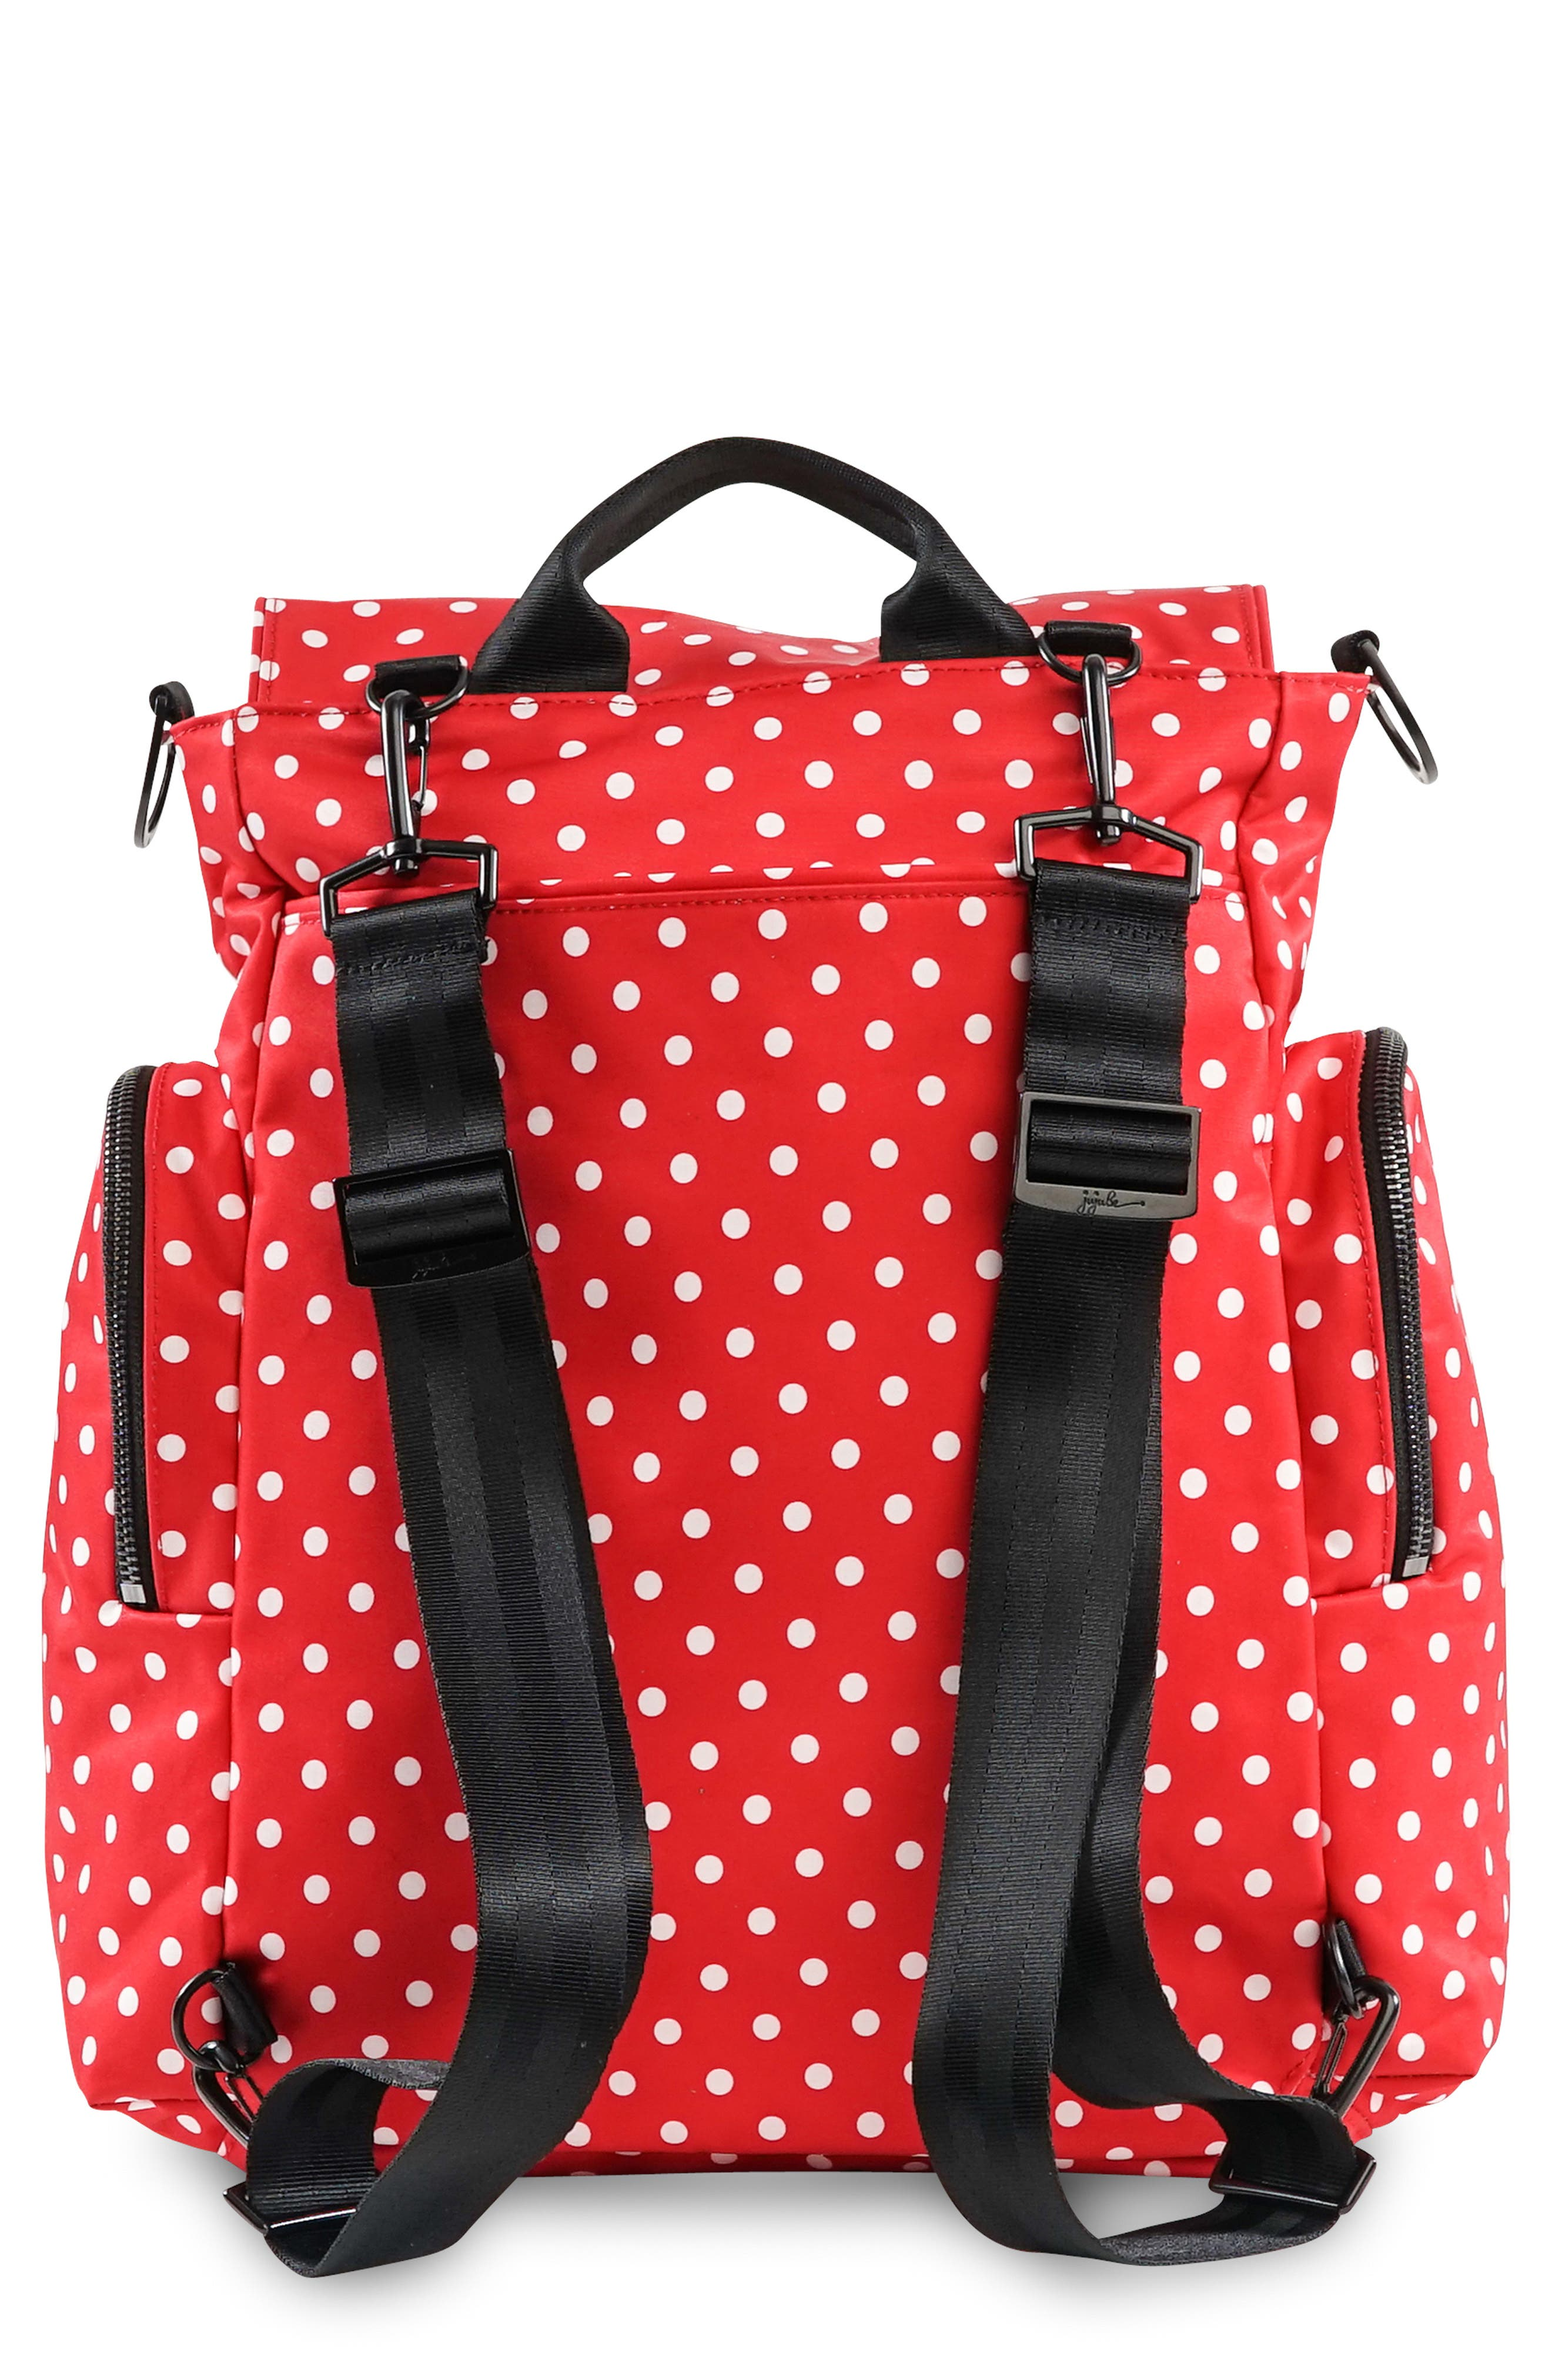 Onyx Be Sporty Diaper Backpack,                             Alternate thumbnail 2, color,                             BLACK RUBY